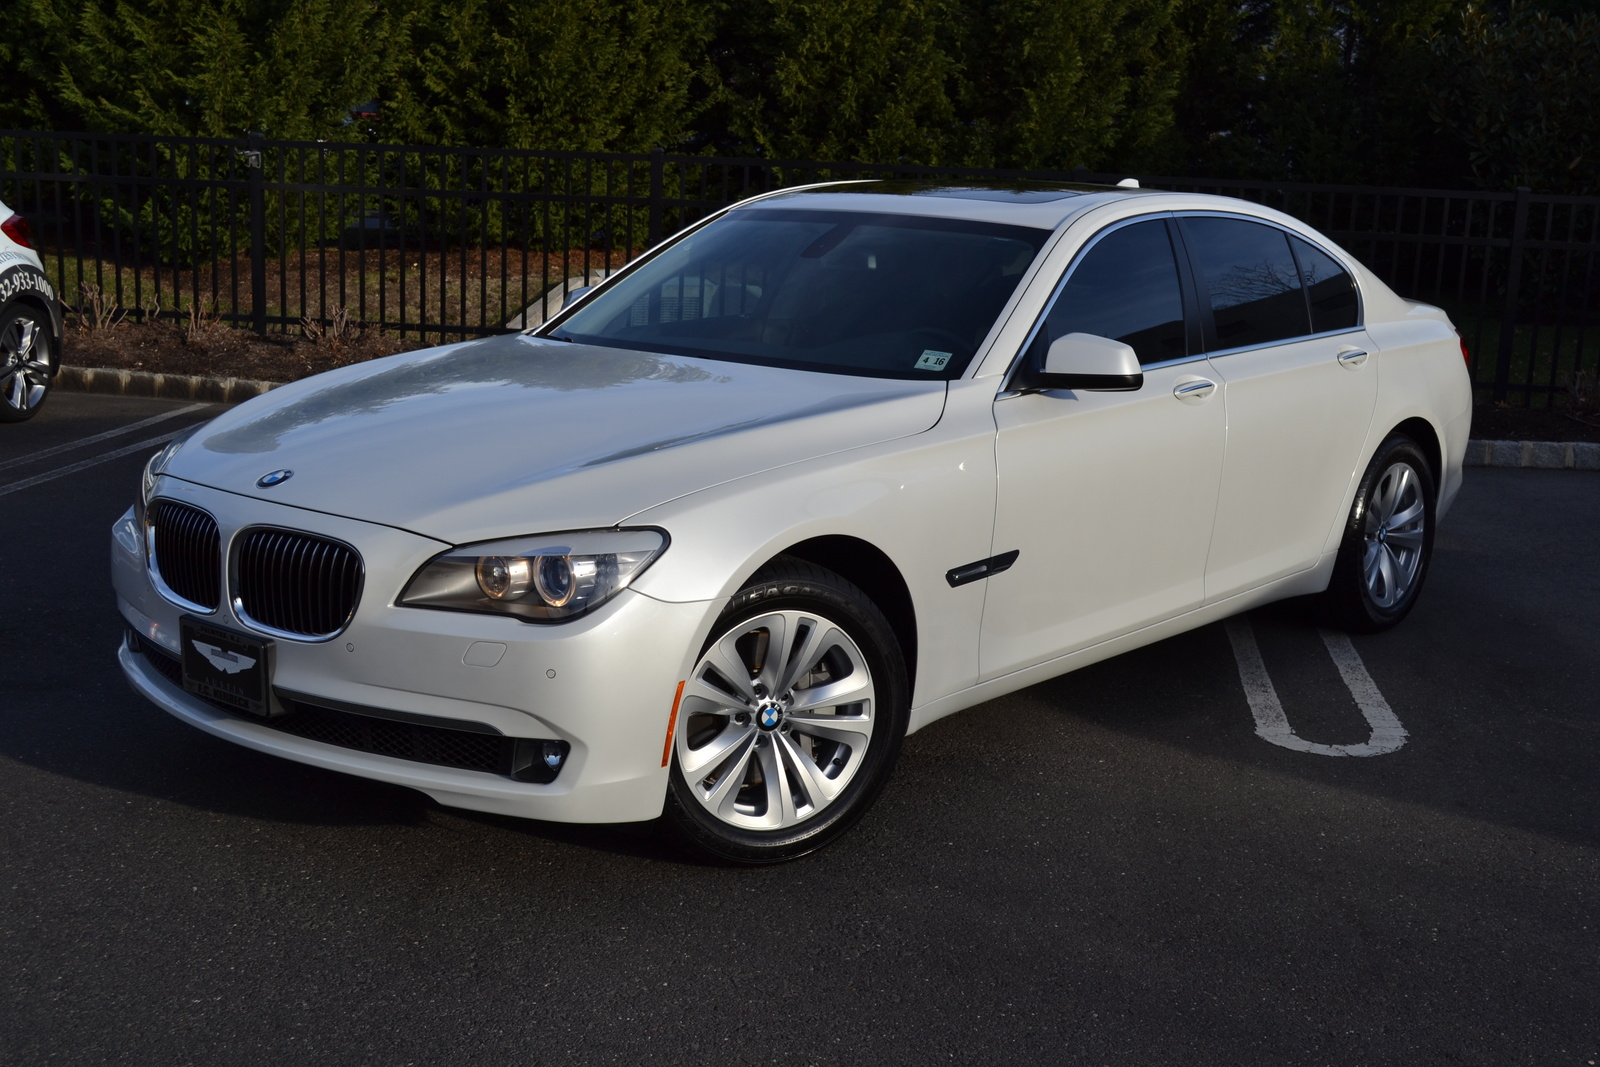 BMW 7 series 730Li 2012 photo - 7